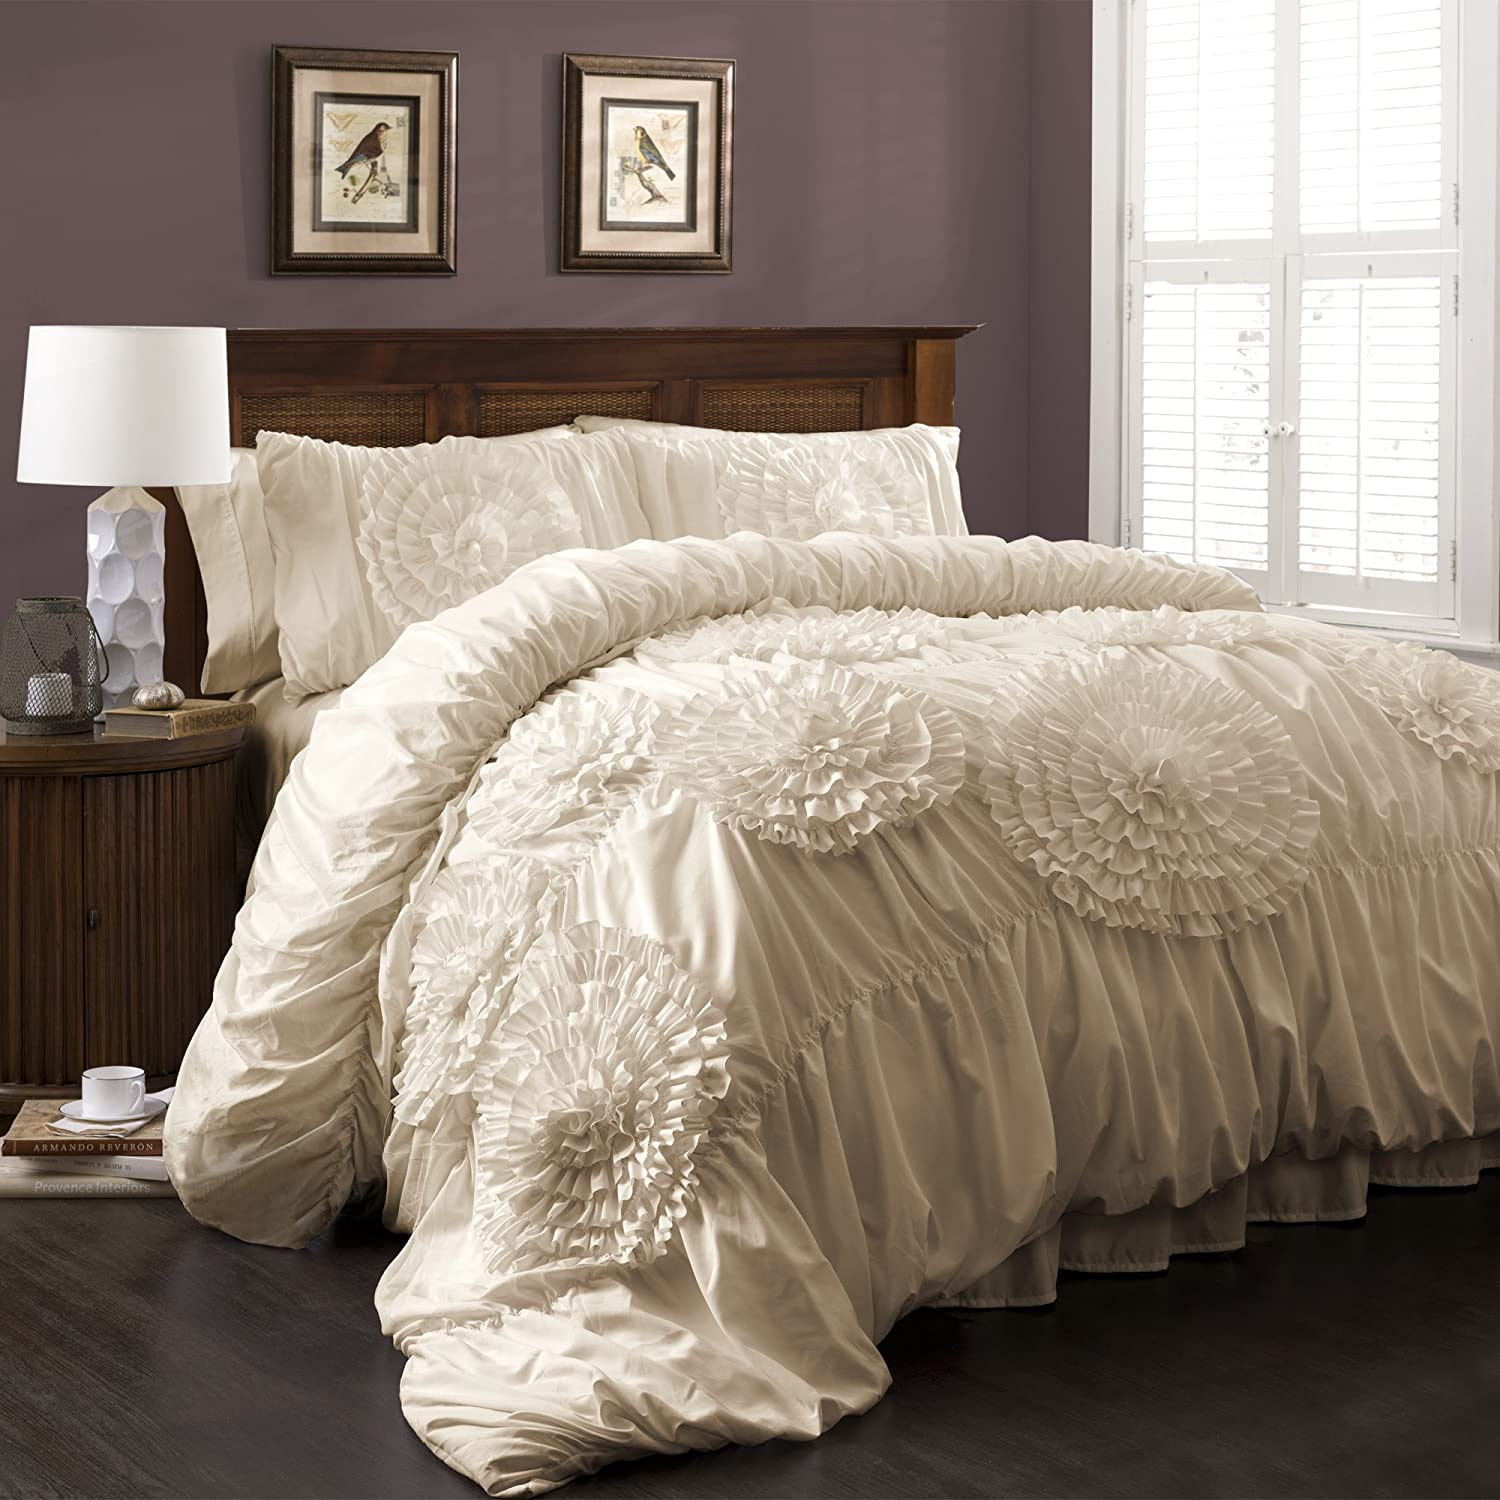 comforter allerease id category catalog decorative bedroom products s allergy product shot view ivory